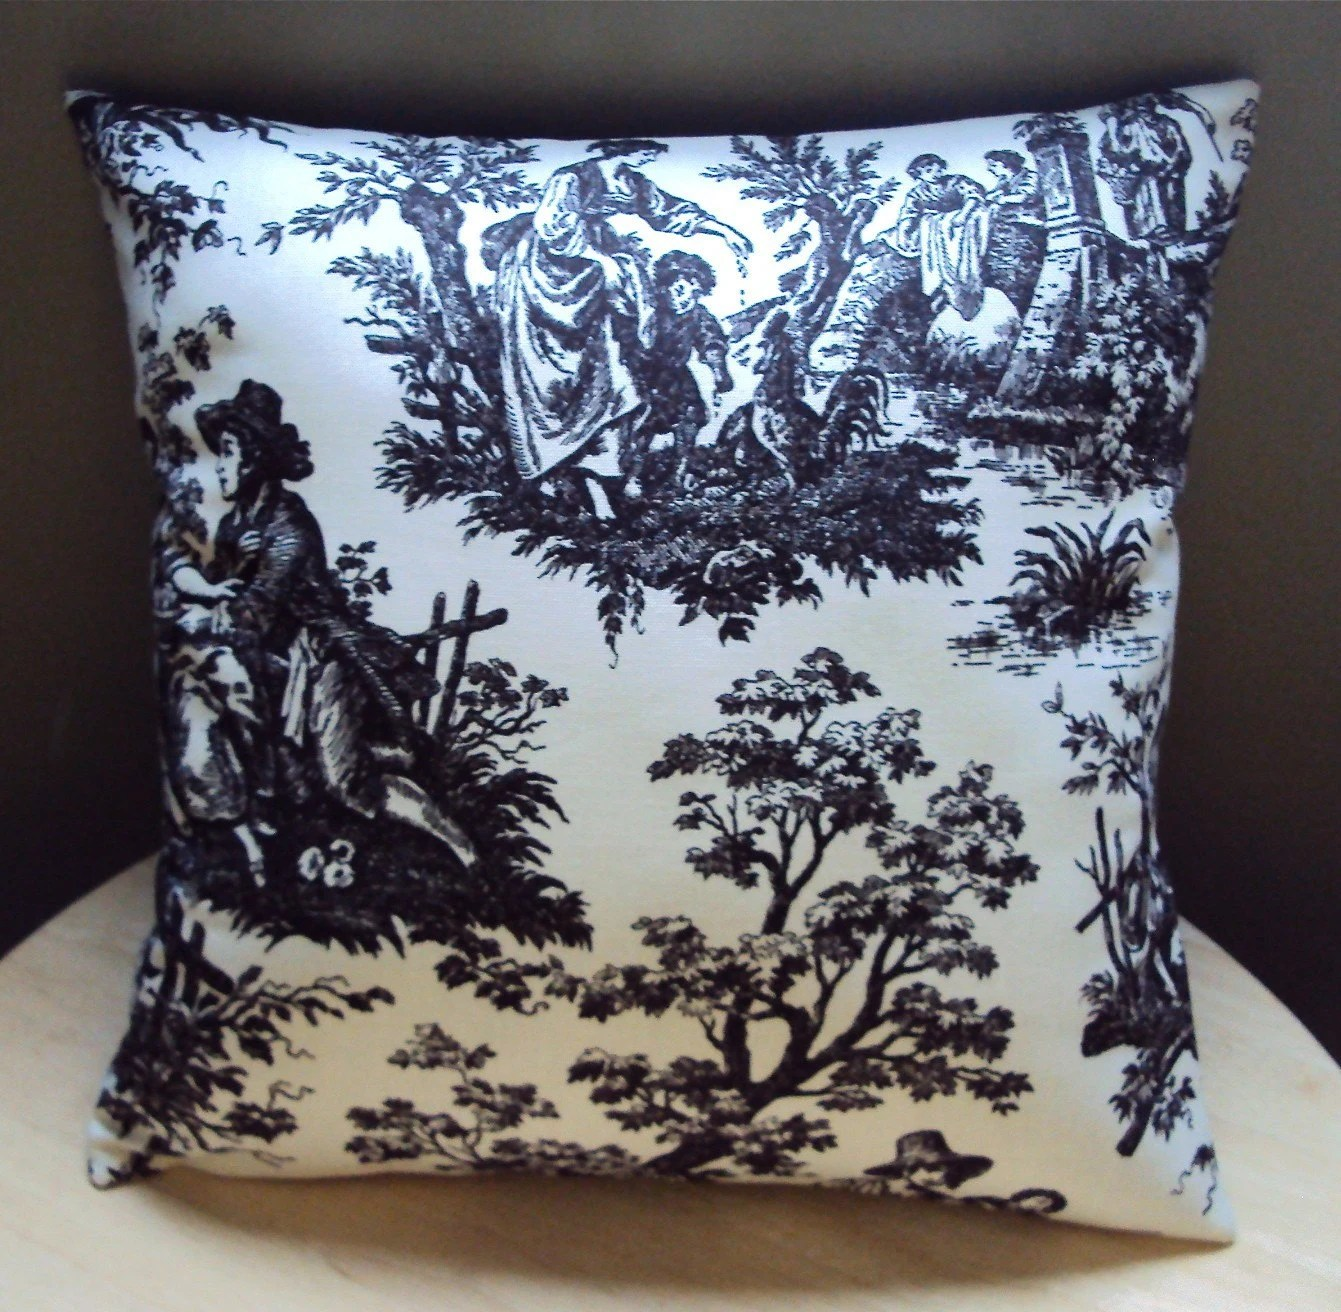 SALE Waverly Black Country Life Toile Fabric Pillow Cover